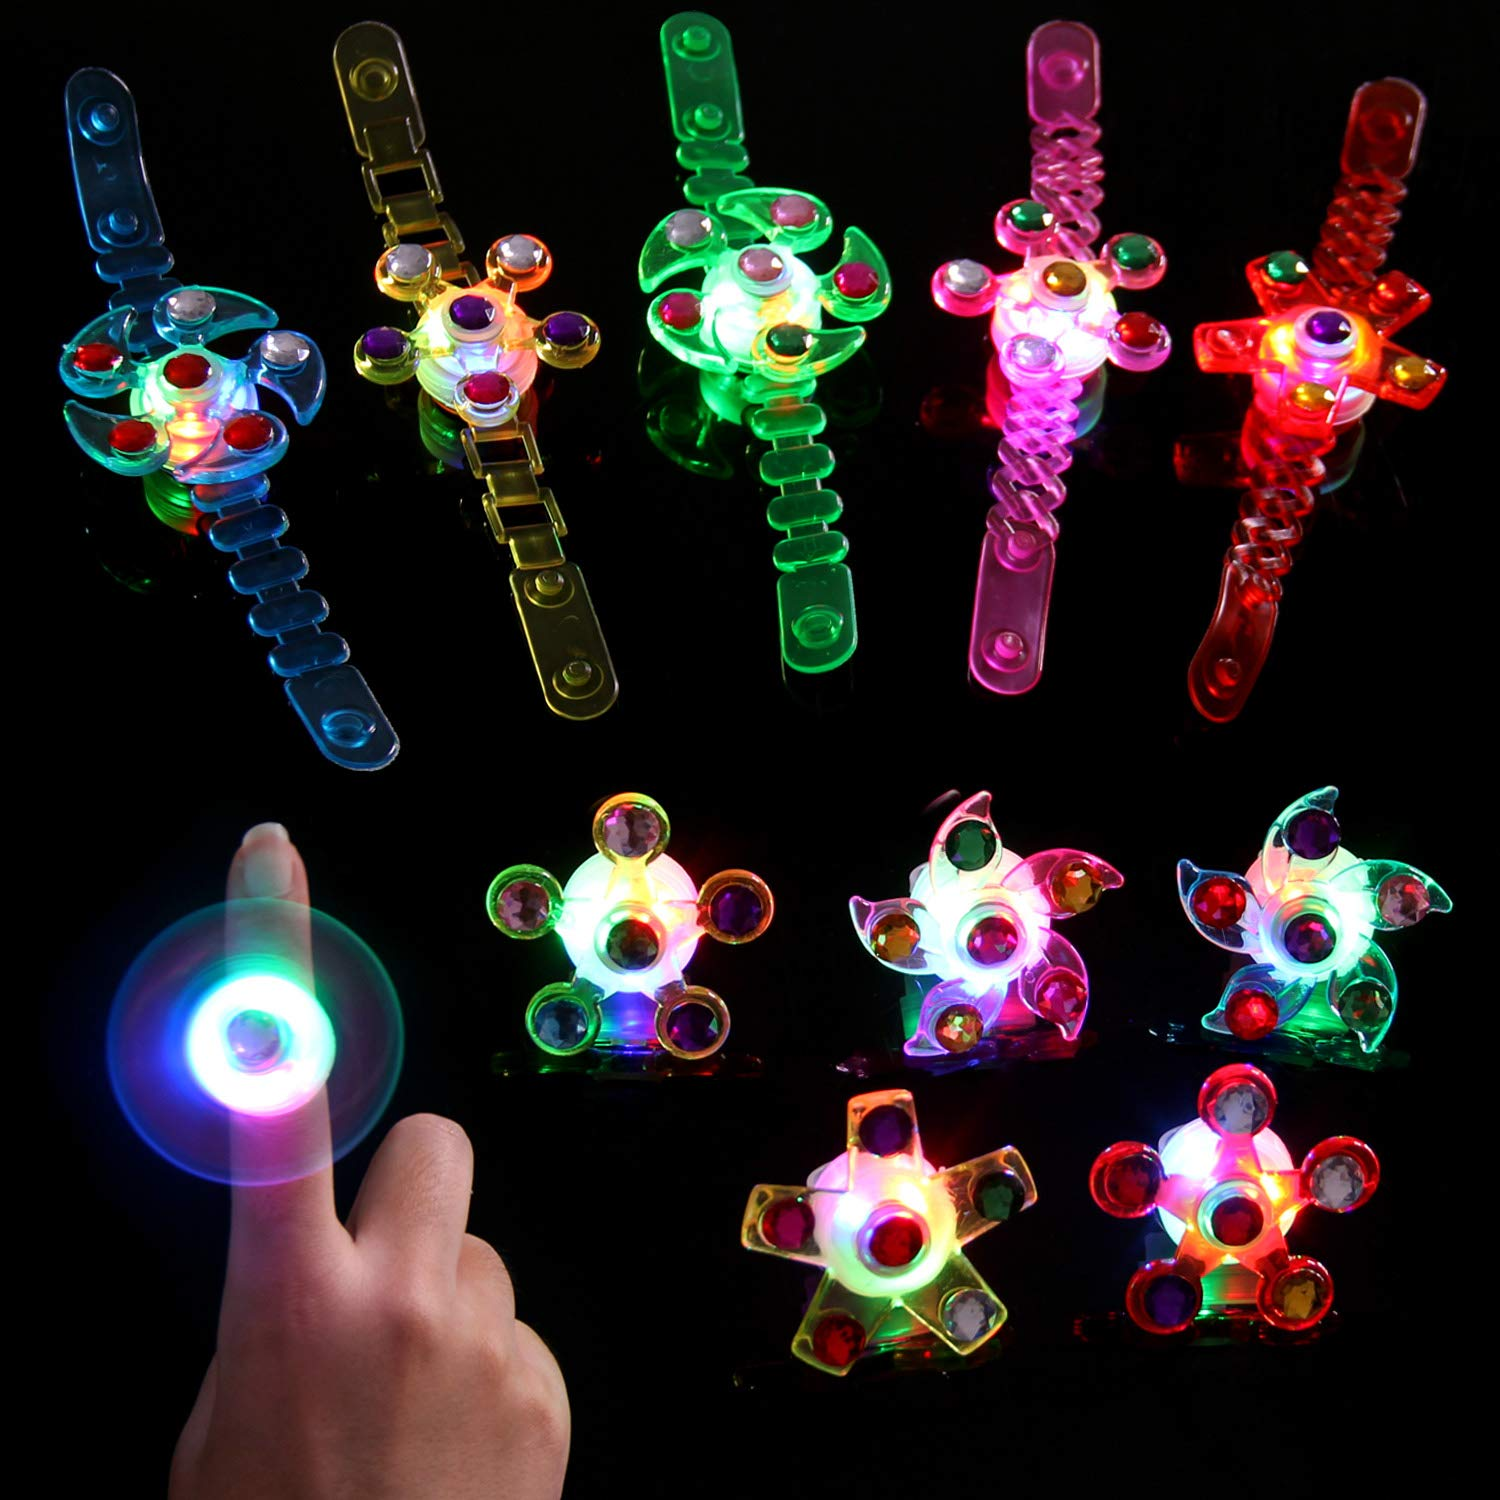 Satkago 18Pcs Light Up Rings Bracelets LED Party Favors for Kids Boys Glow in The Dark Party Supplies Bulk Neon Party Supplies Hand Spin Stress Relief Anxiety Toys Prizes for Kids Classroom